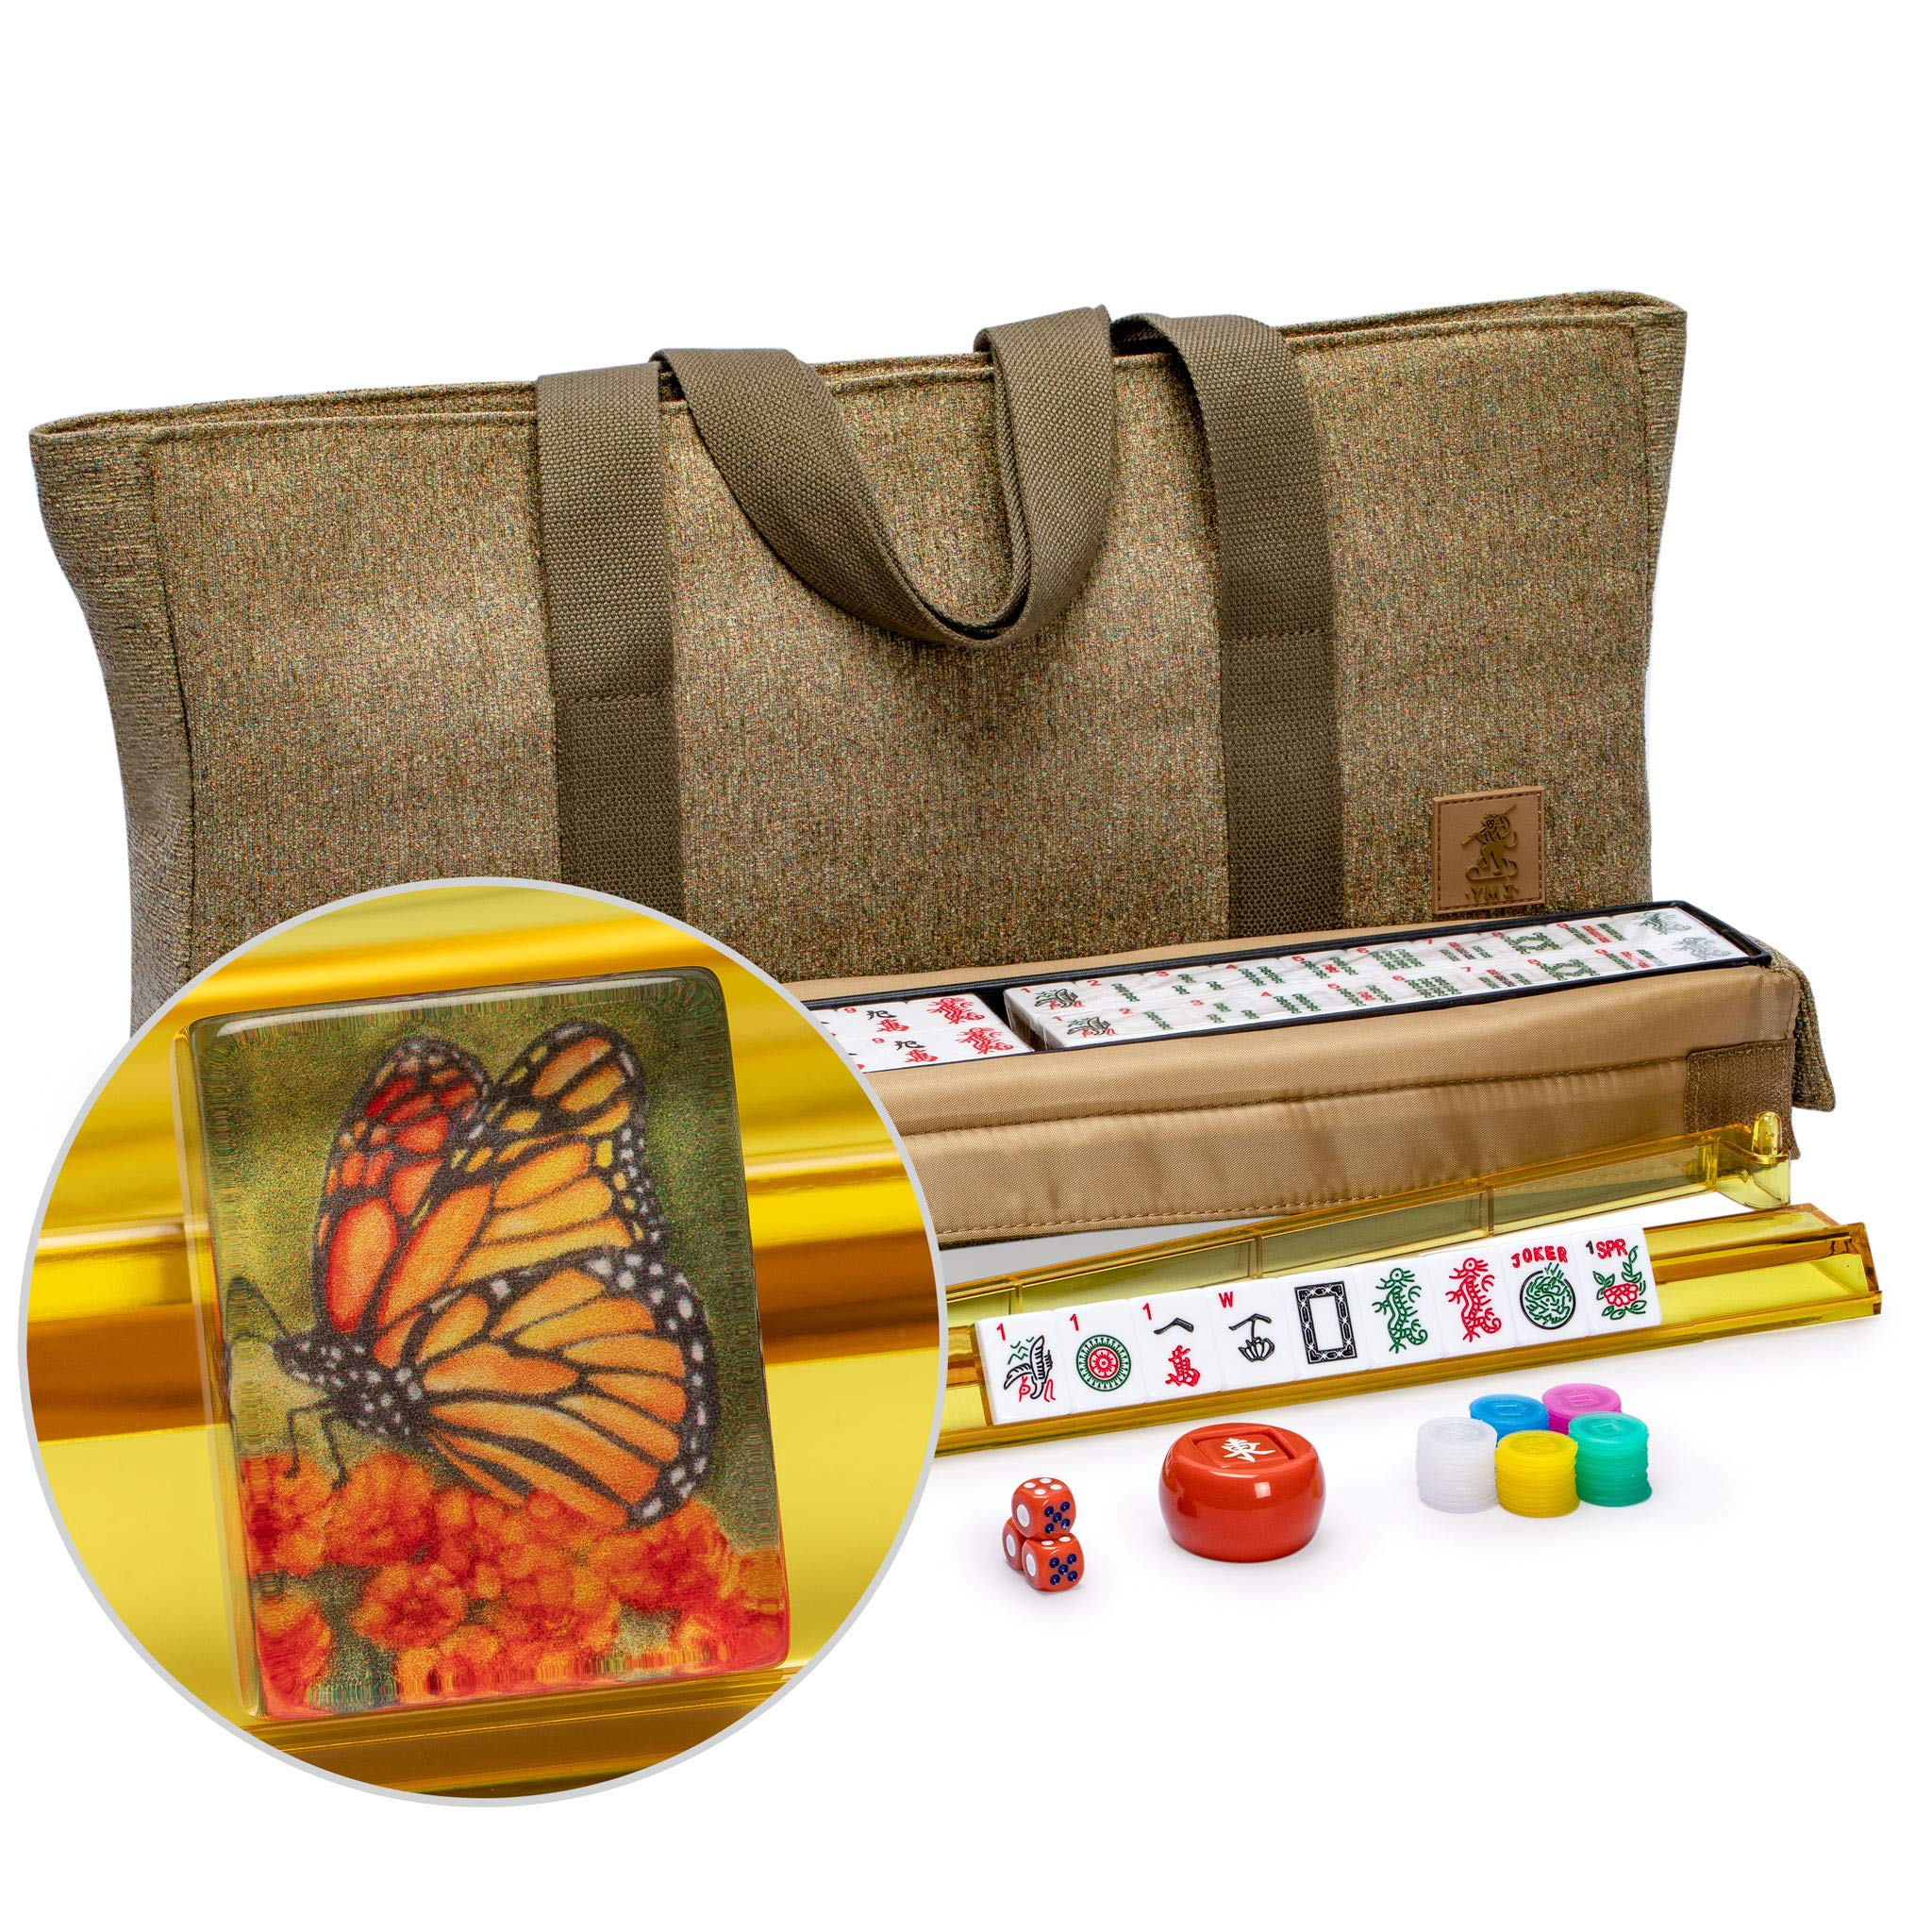 Yellow Mountain Imports American Mahjong Set, Papillon Tiles with Olive Green Fabric Case - All Accessories Included